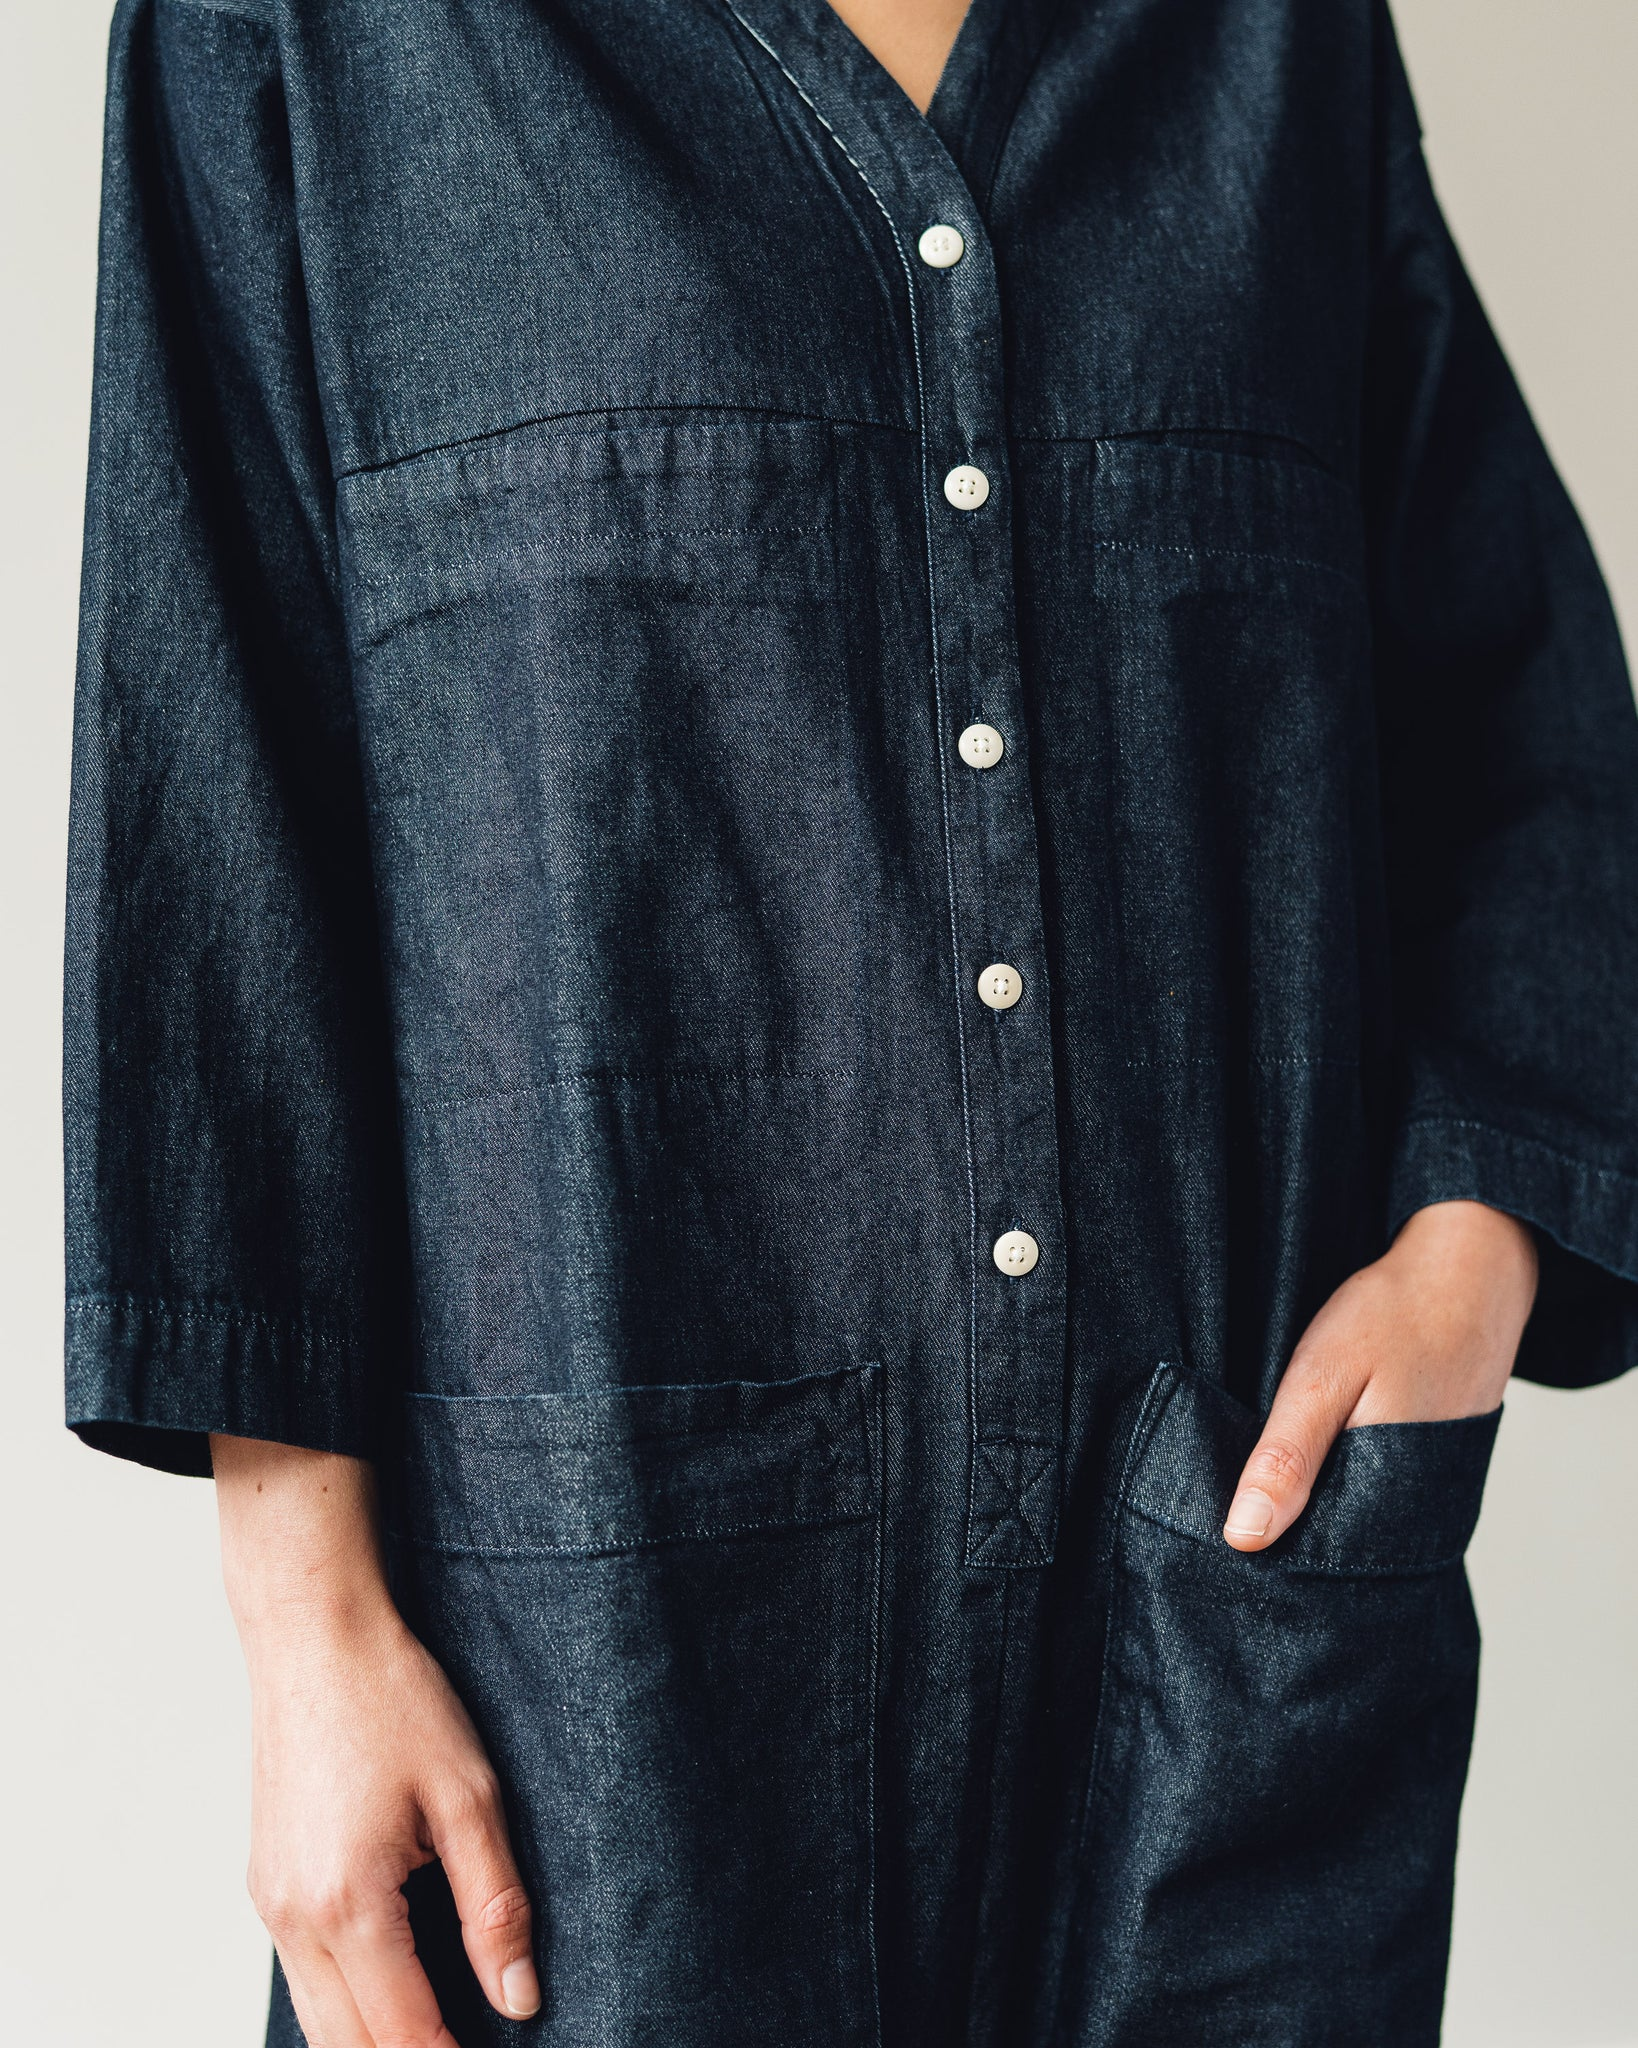 Ilana Kohn Tuck Coverall, Dark Denim